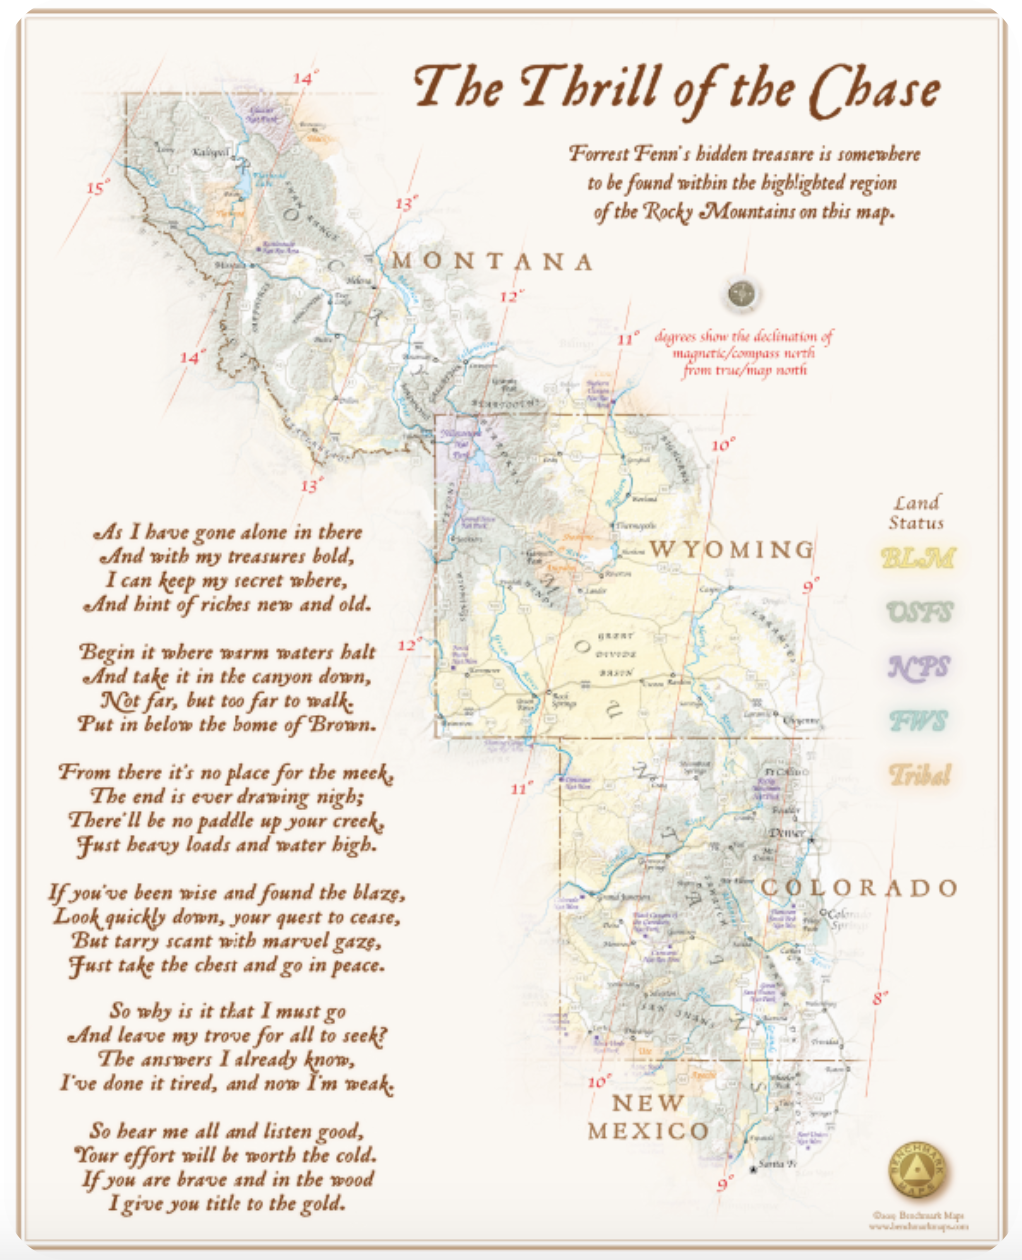 """The Thrill of the Chase"" map and poem"